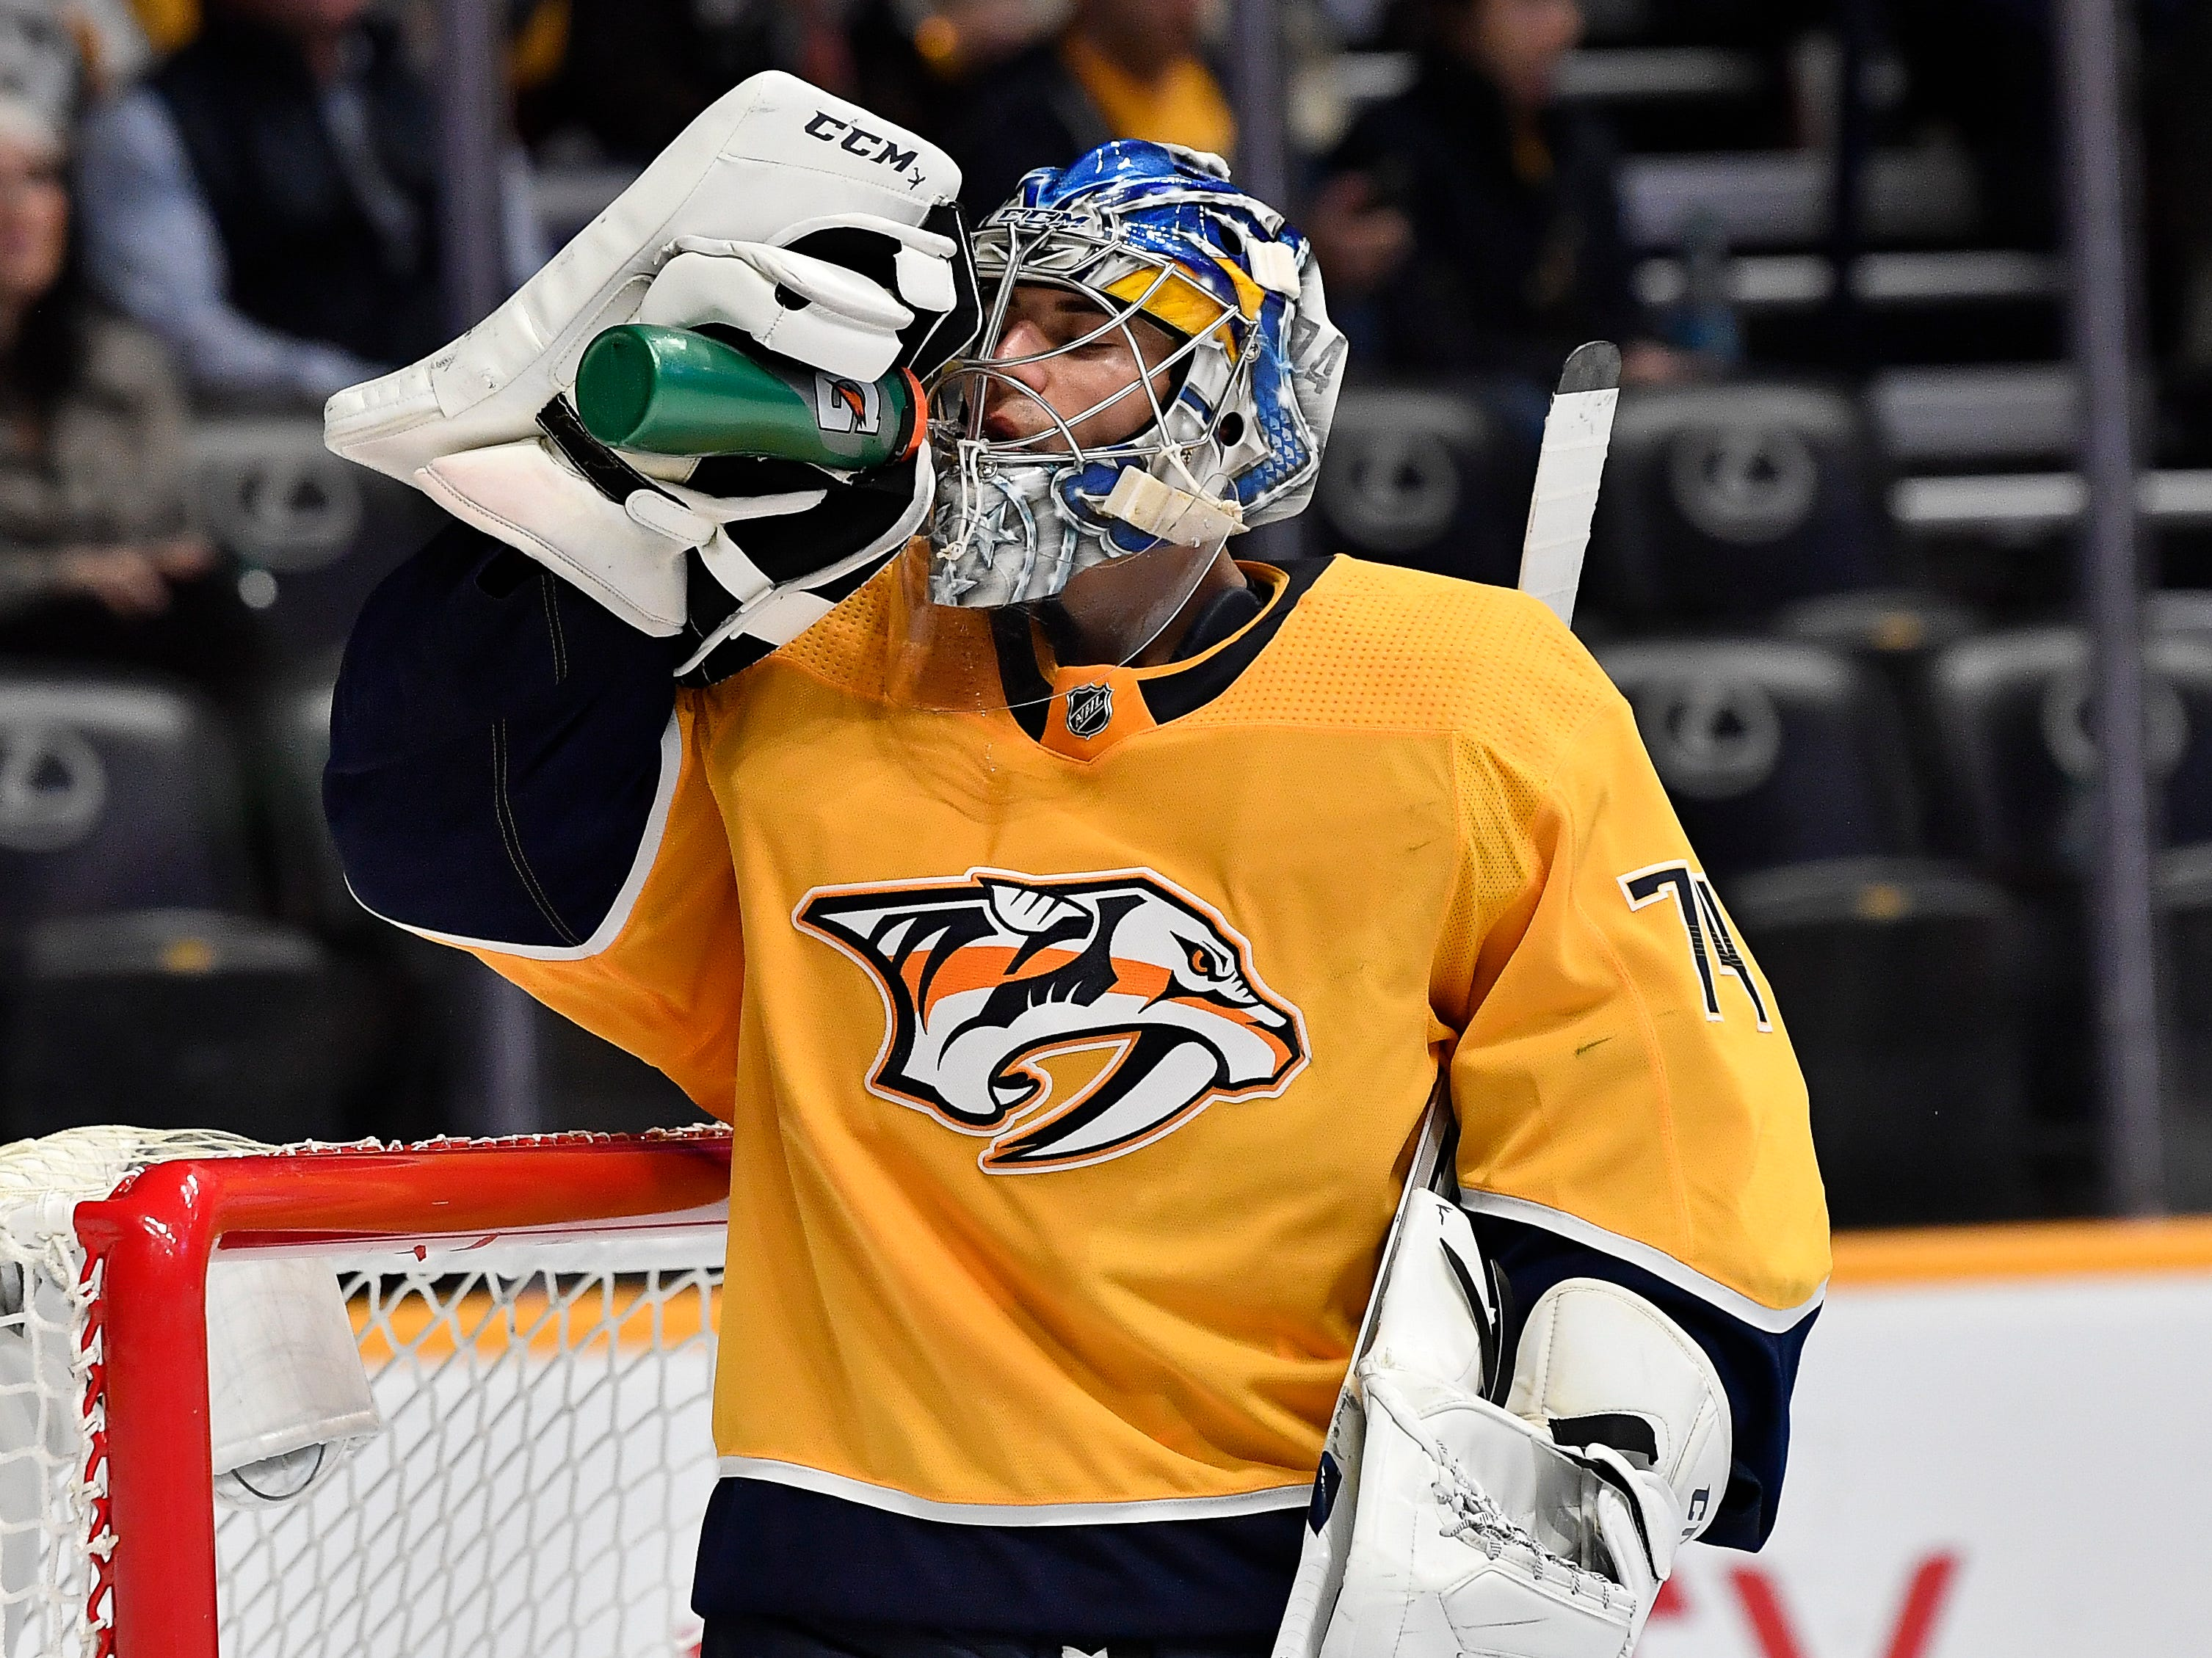 Oct. 23: Sharks 5, Predators 4: Predators goaltender Juuse Saros (74) takes a drink during a break in the action during the second period against the Sharks at Bridgestone Arena Tuesday, Oct. 23, 2018, in Nashville, Tenn.